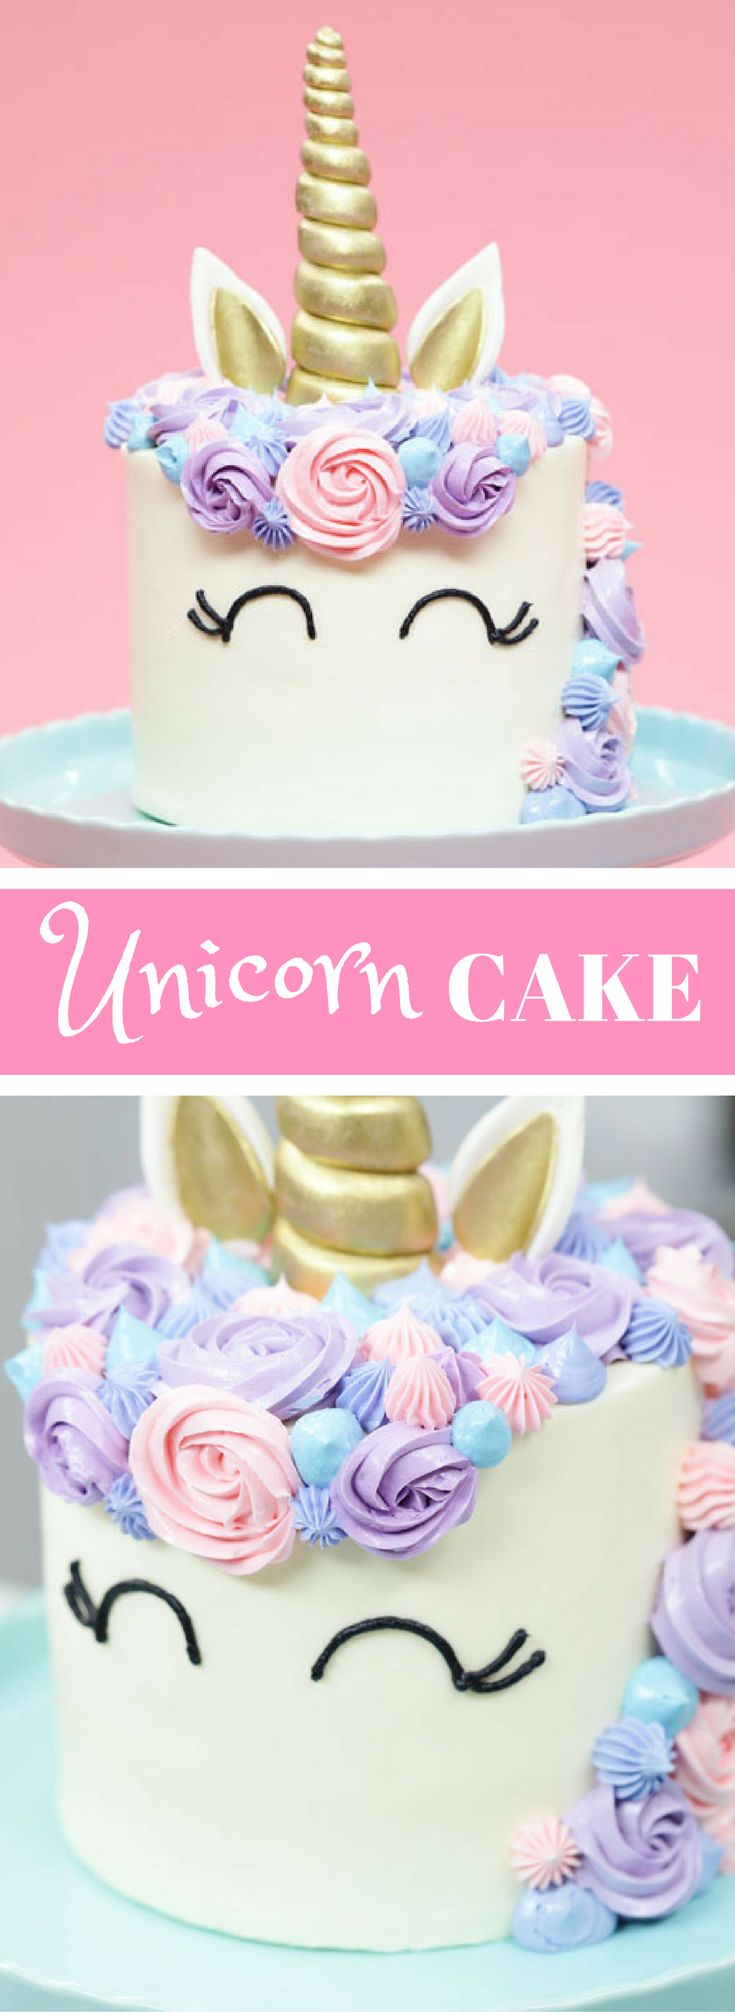 An easy funfetti Unicorn Cake recipe adorned in pastel buttercream and topped with a golden horn! Makes one 6 inch cake